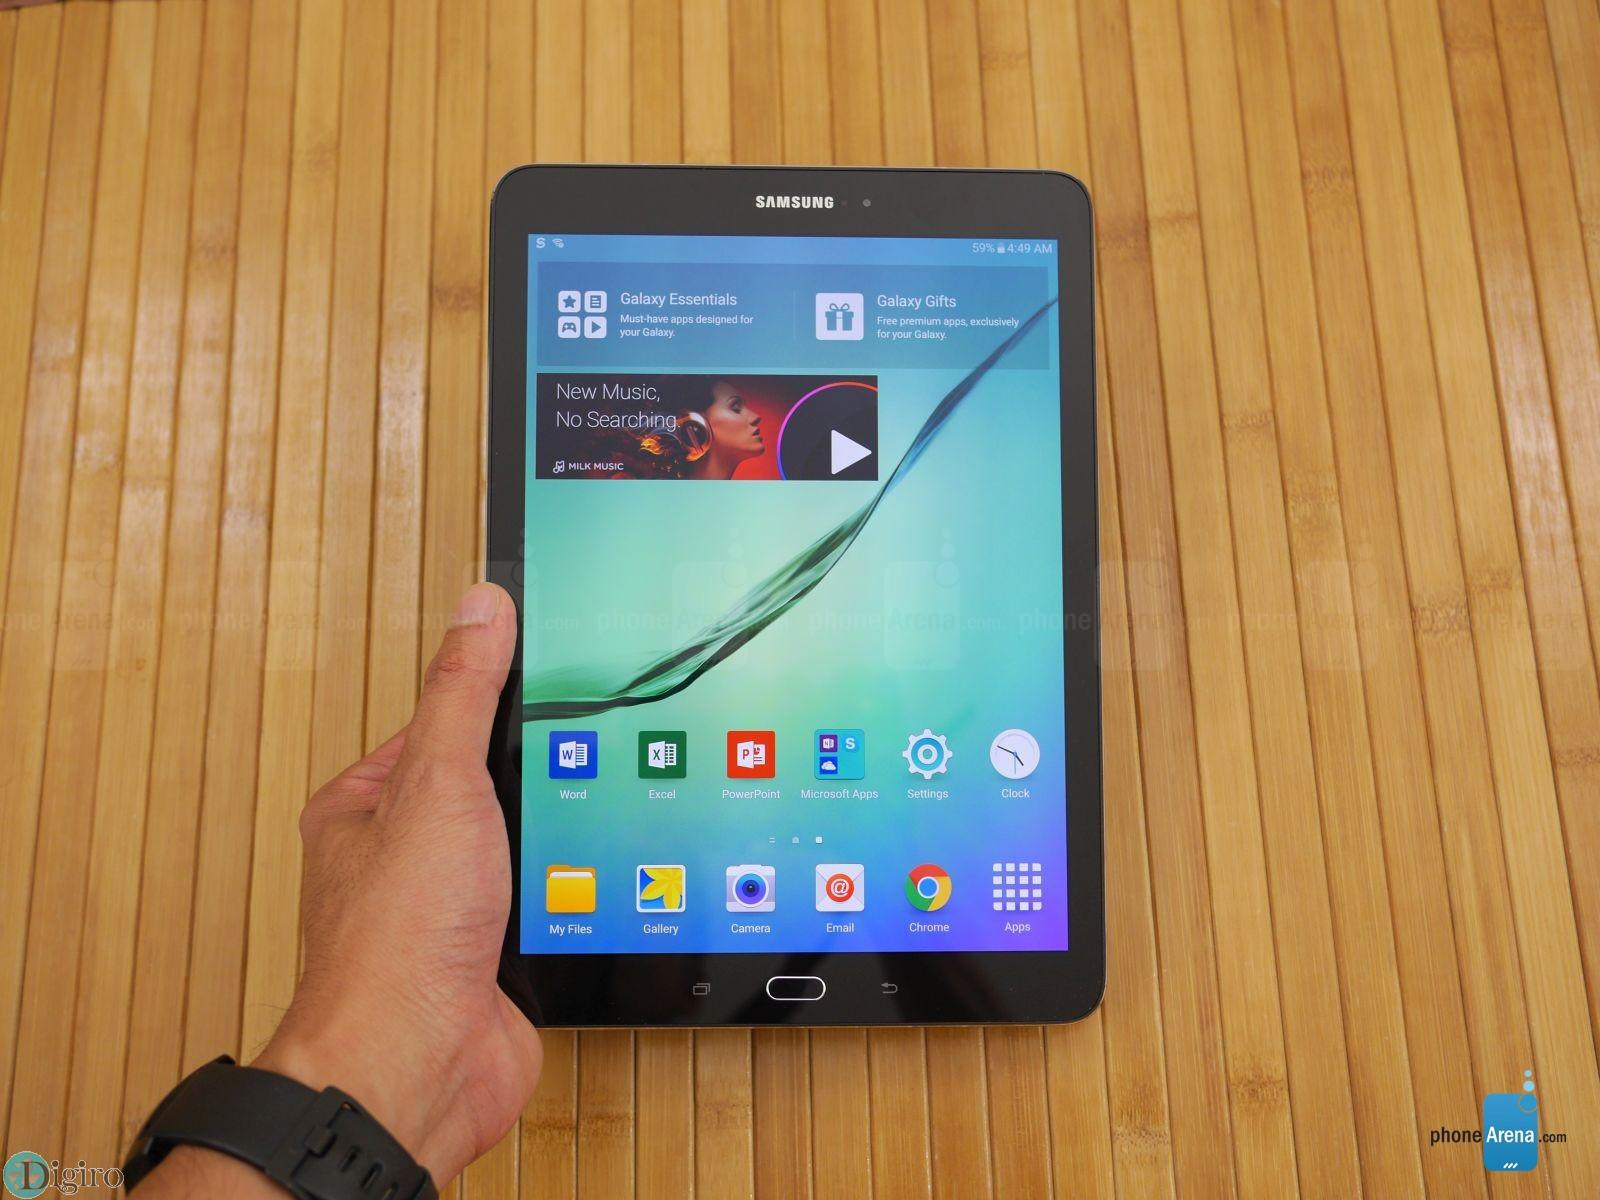 Samsung-Galaxy-Tab-S2-9.7-inch-hands-on--amp-unboxing (16)